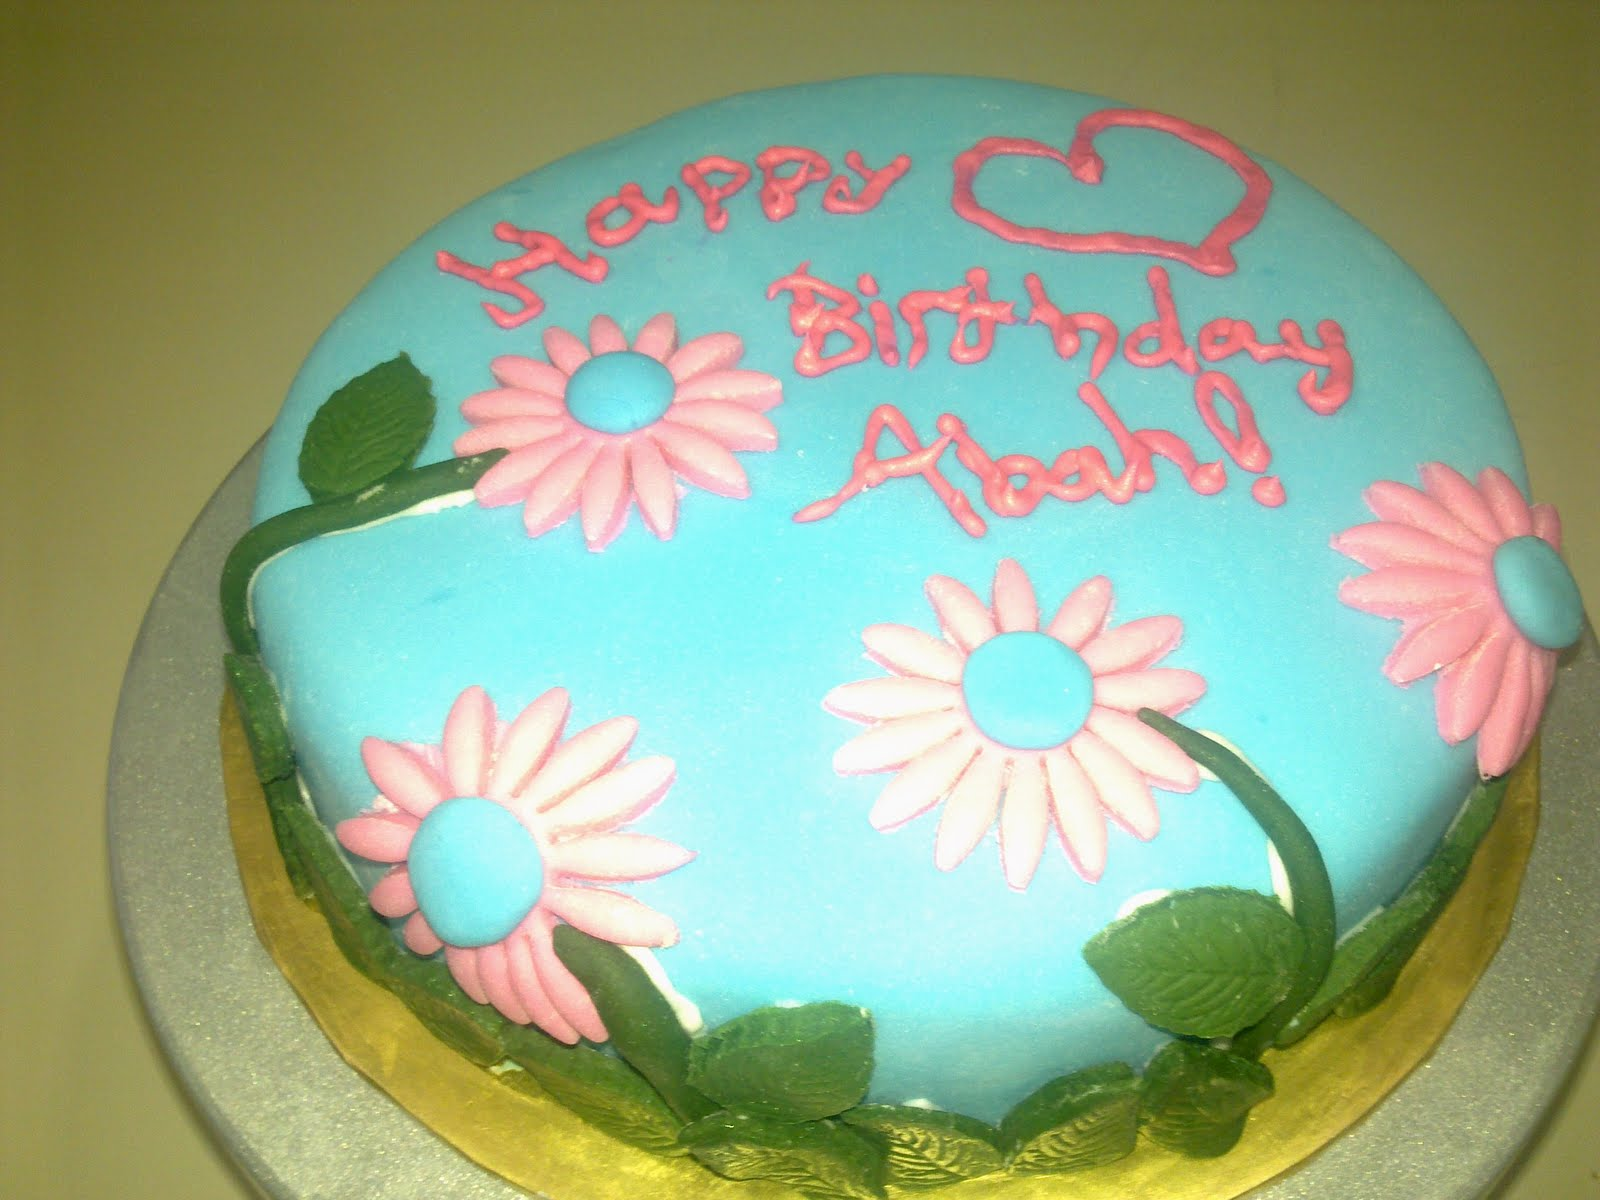 Cake Decorating Classes For 11 Year Olds : Mini Delicious: Kids Baking and Cake Decorating Class.